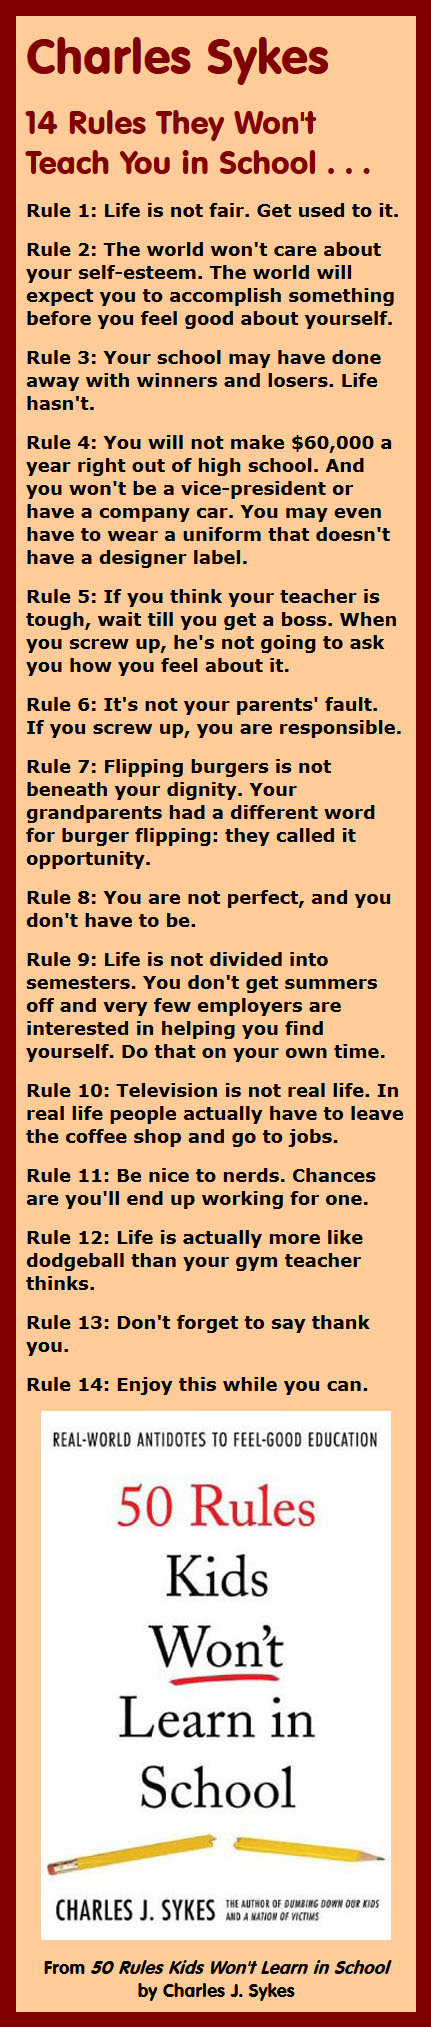 14 Rules They Won't Teach You in School excerpted from 50 Rules Kids Won't Learn in School by Charles Sykes